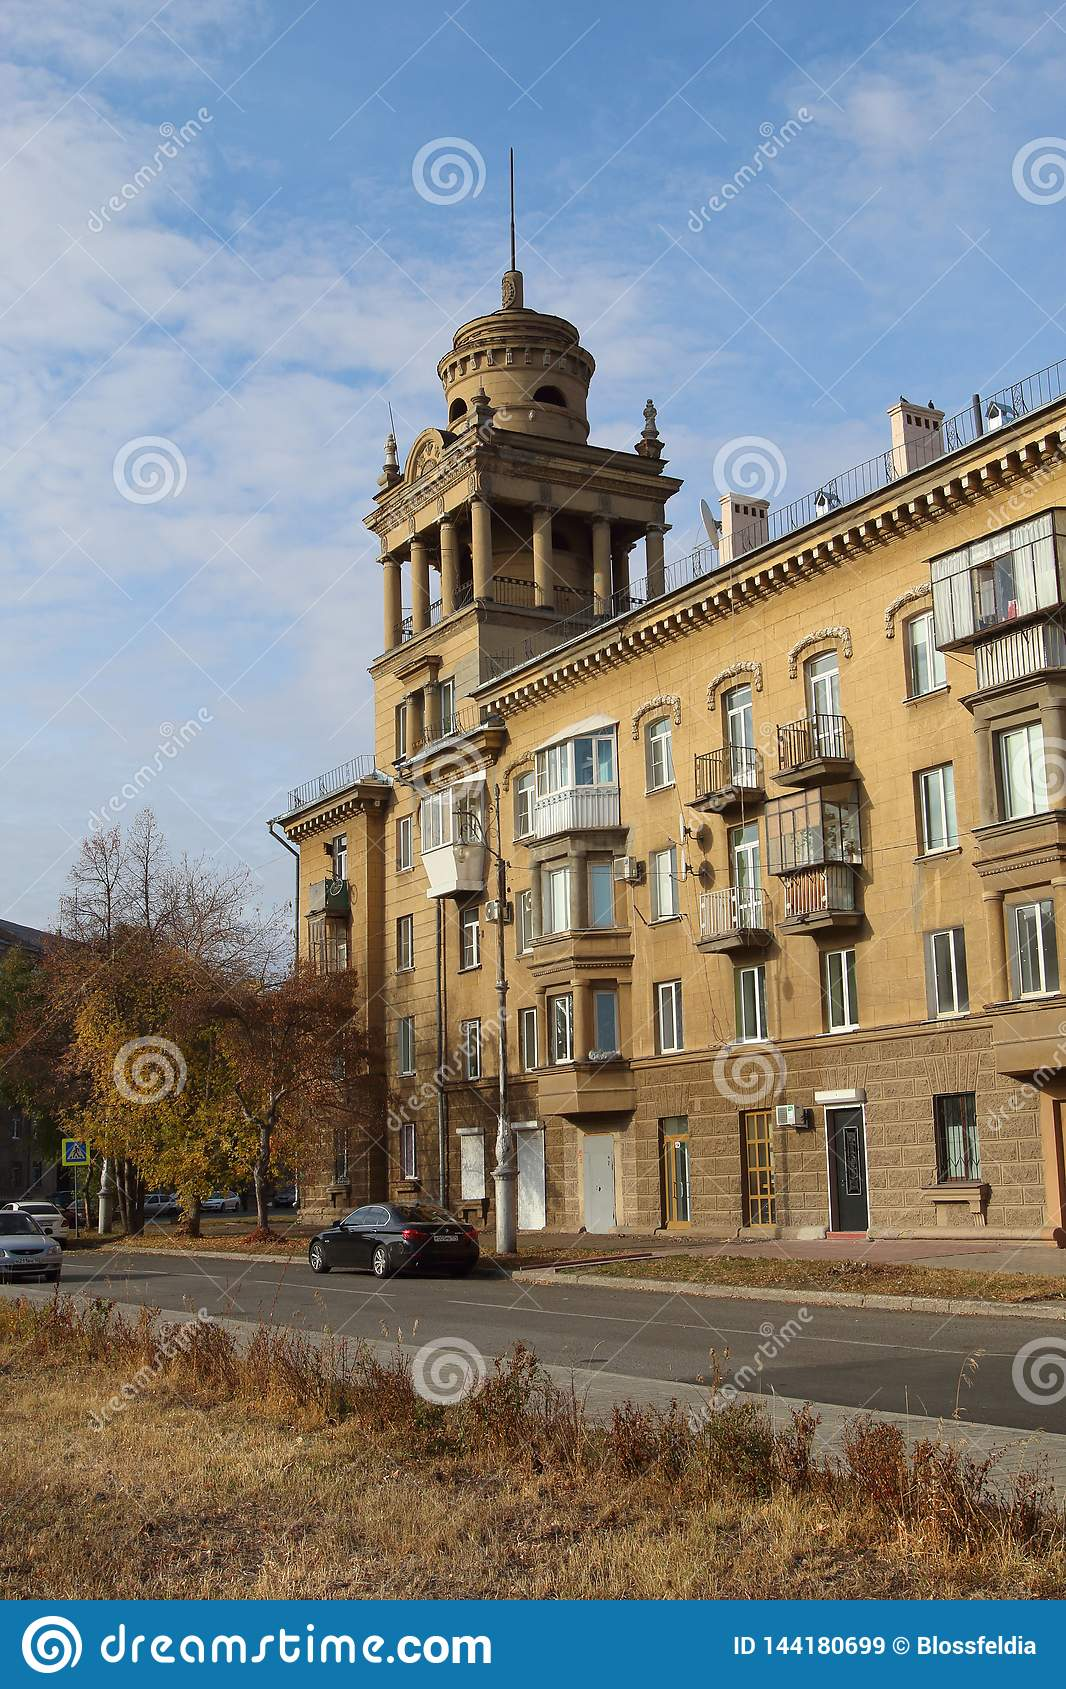 House on Chapaev street, Magnitogorsk city, Russia